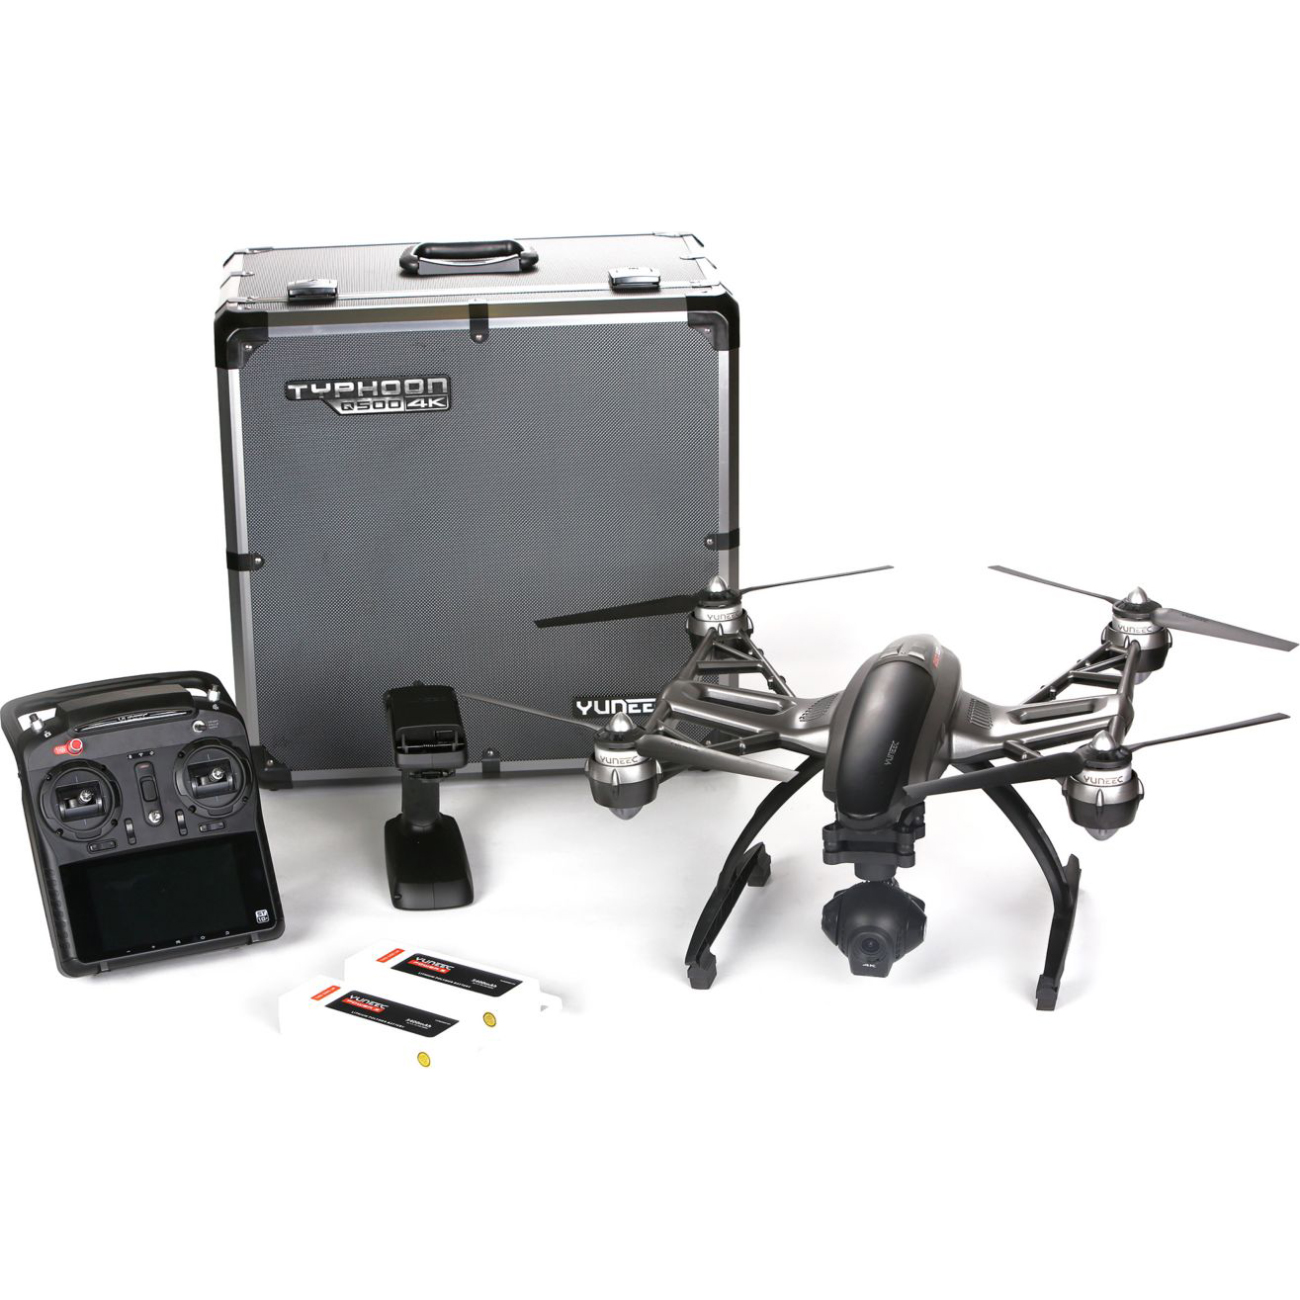 Yuneec Typhoon Q500 4K Quadcopter Drone UHD Includes Aluminum Case and Second Battery by Yuneec